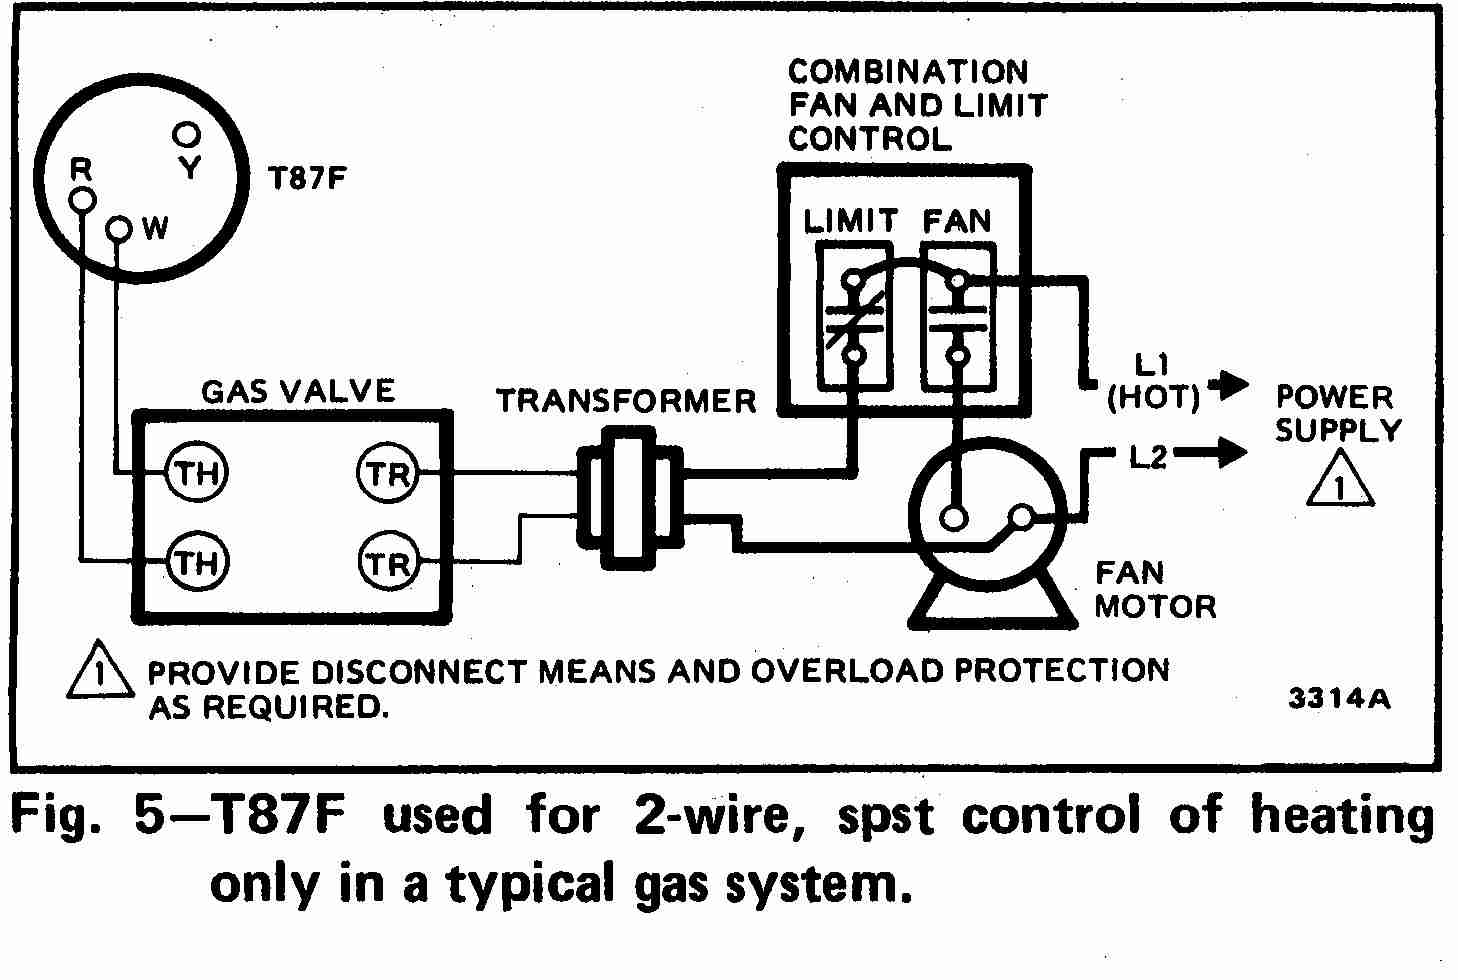 TT_T87F_0002_2Wg_DJF guide to wiring connections for room thermostats wiring diagram for a thermostat at readyjetset.co